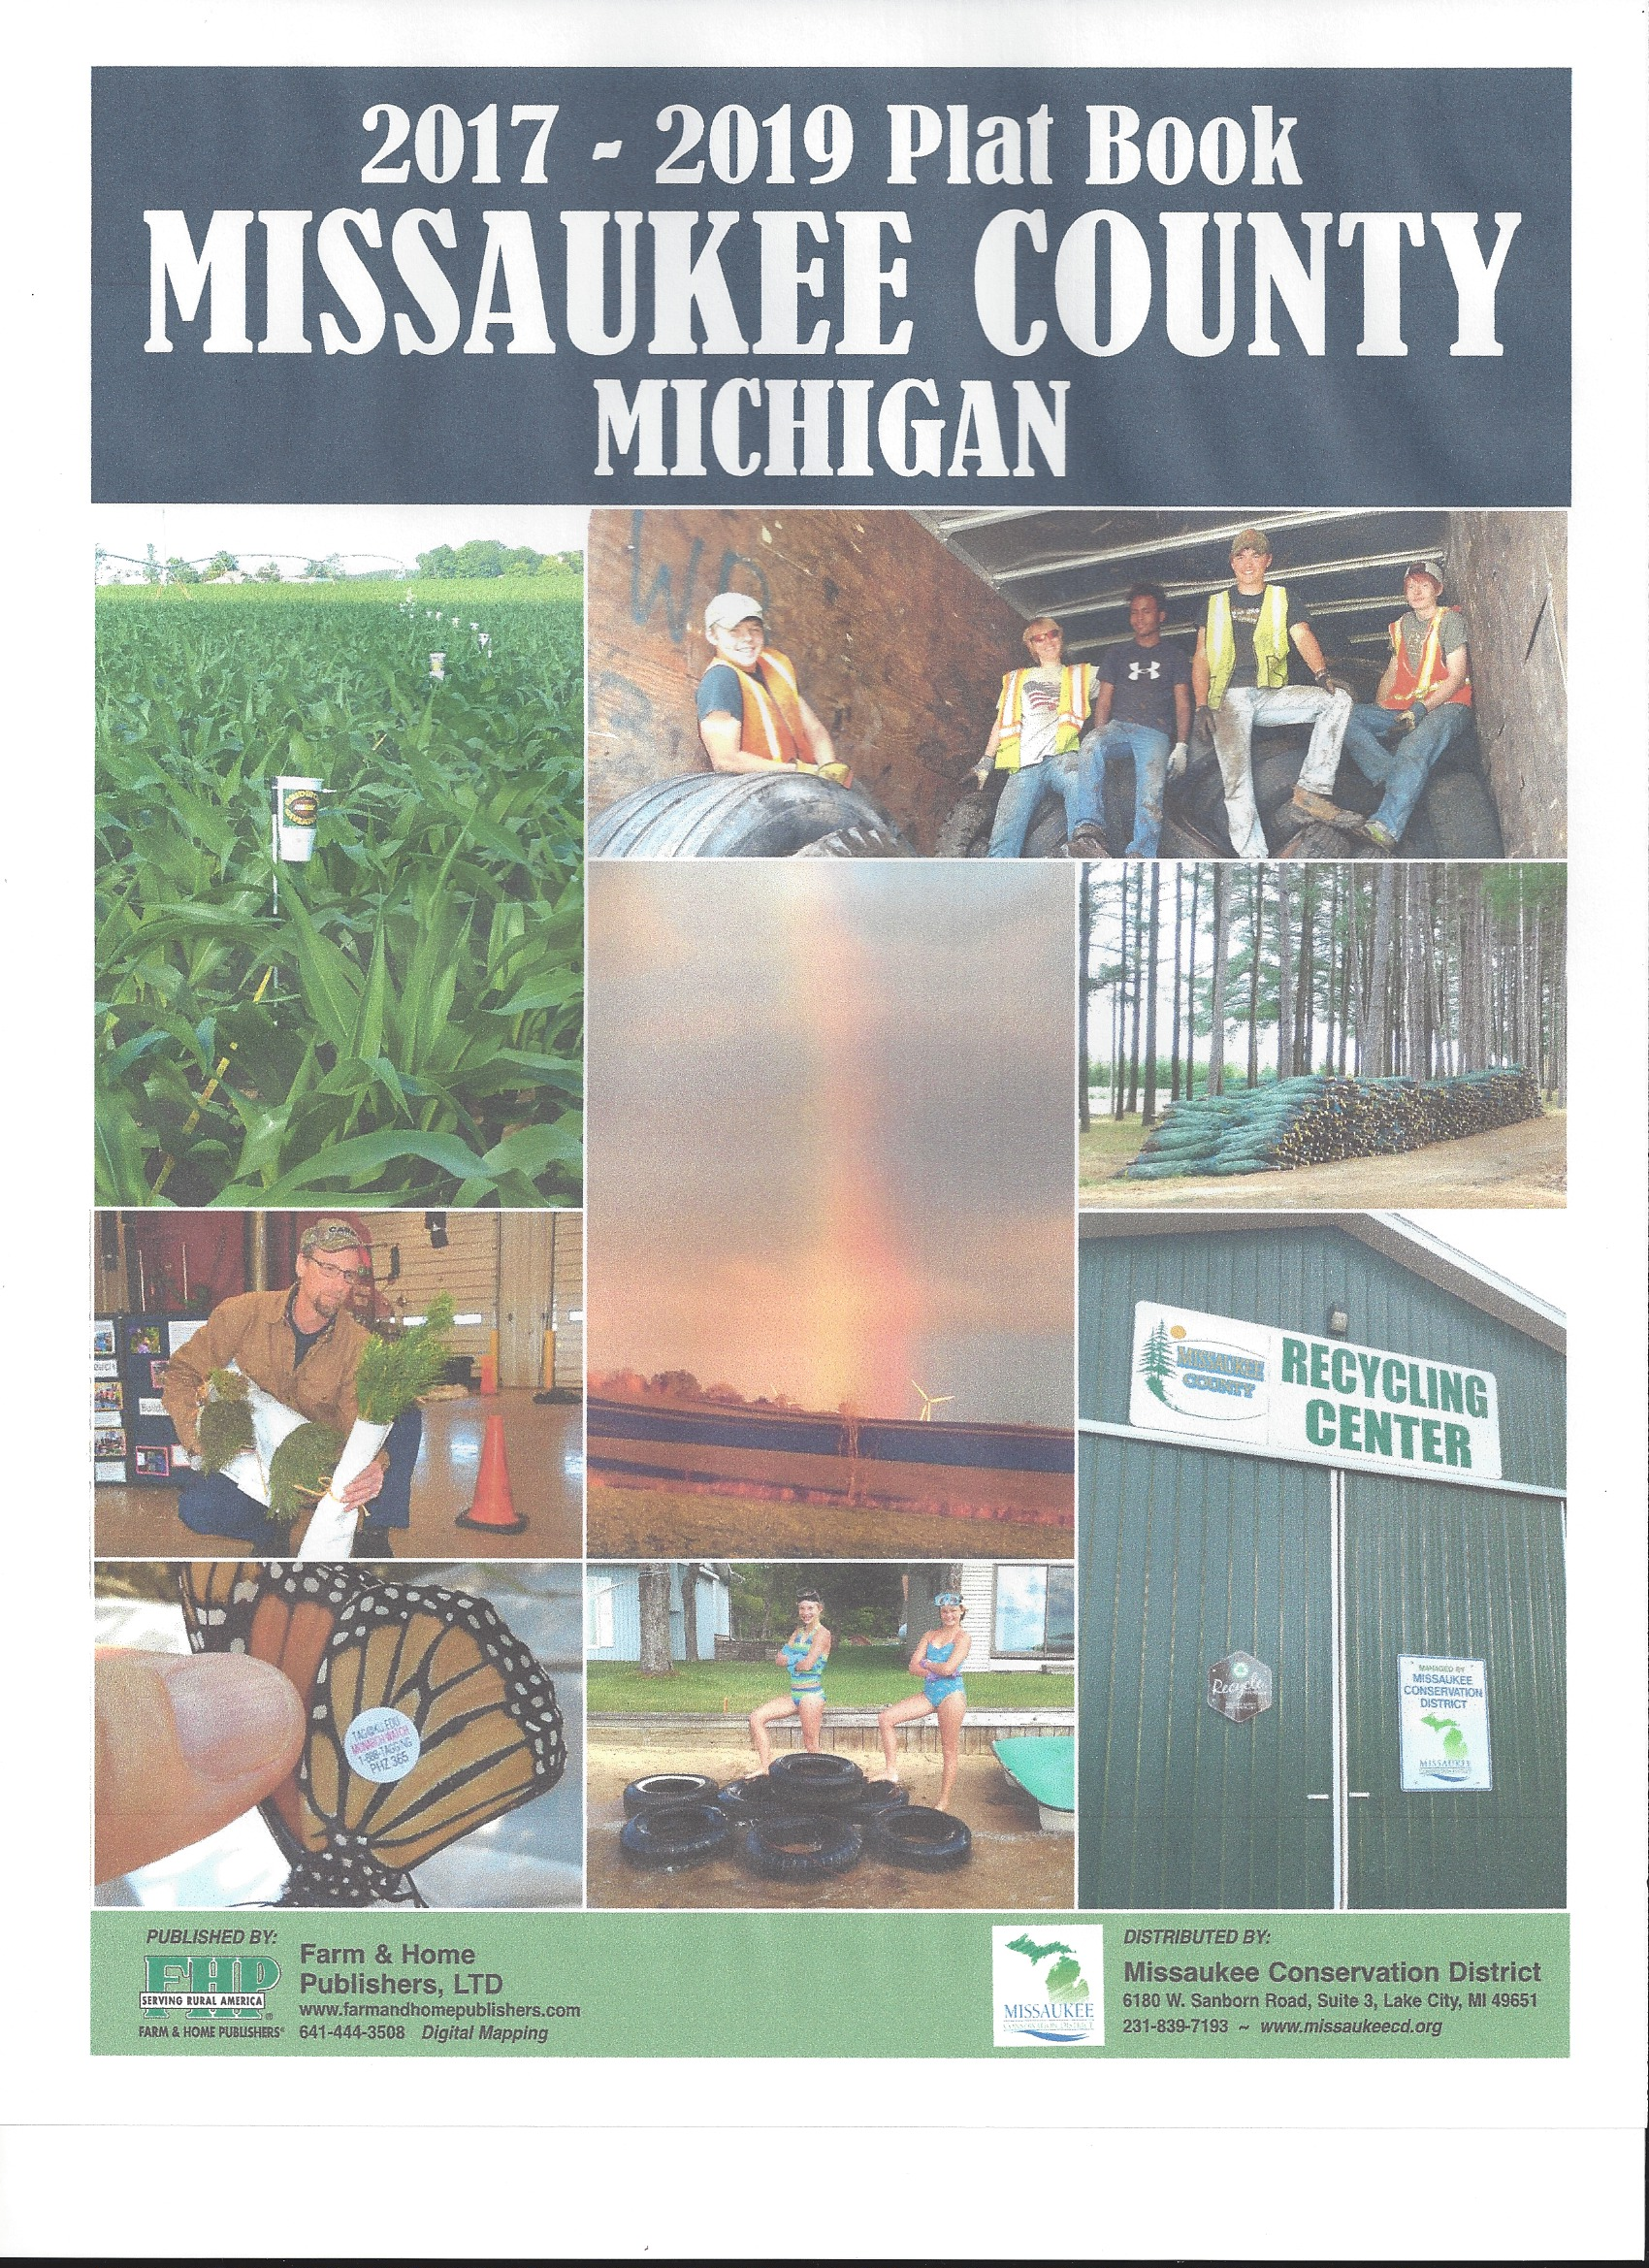 missaukee county Michigan state university extension applies research from msu to help michigan residents solve everyday problems in agriculture, community development, nutrition, family finances, youth development and more.